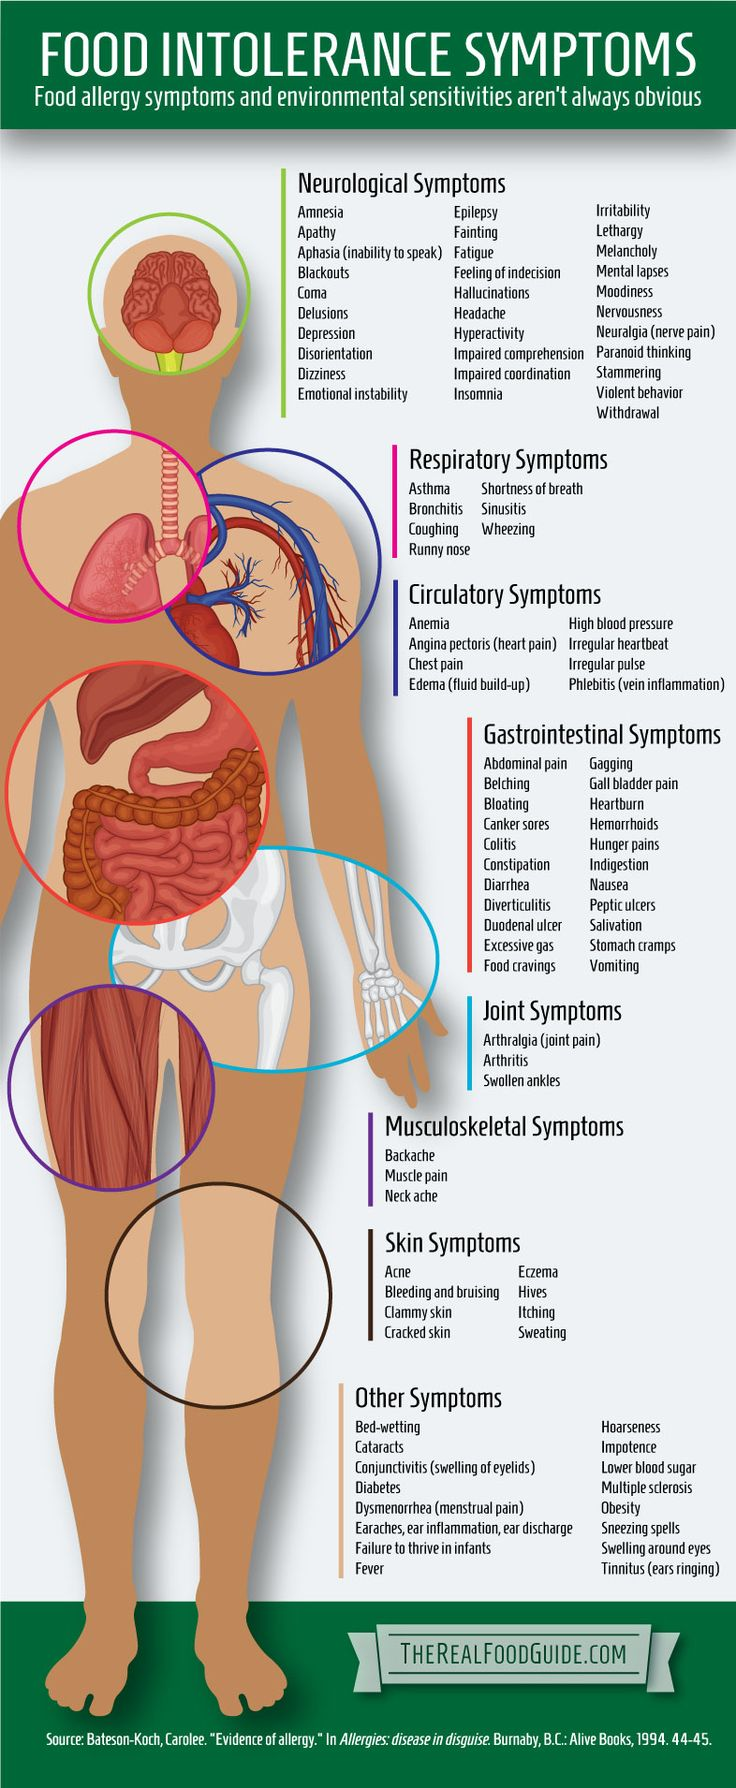 Food intolerance symptoms are more common than you think they are - The Real Food Guide therealfoodguide.com